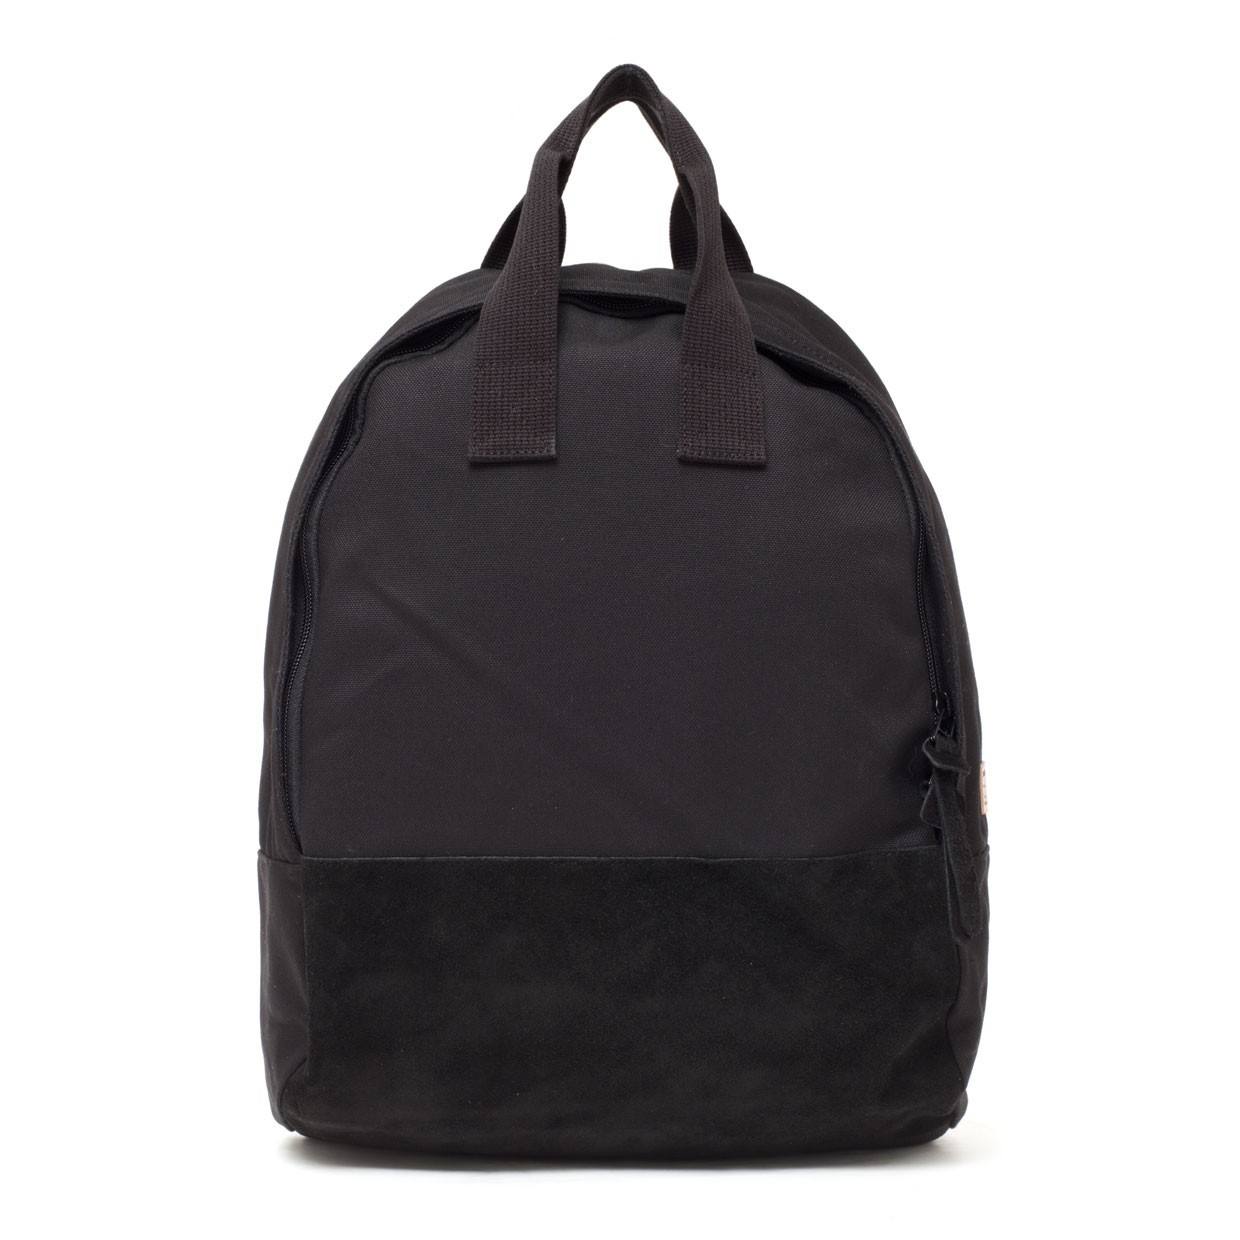 Ear Tote Backpack Noir